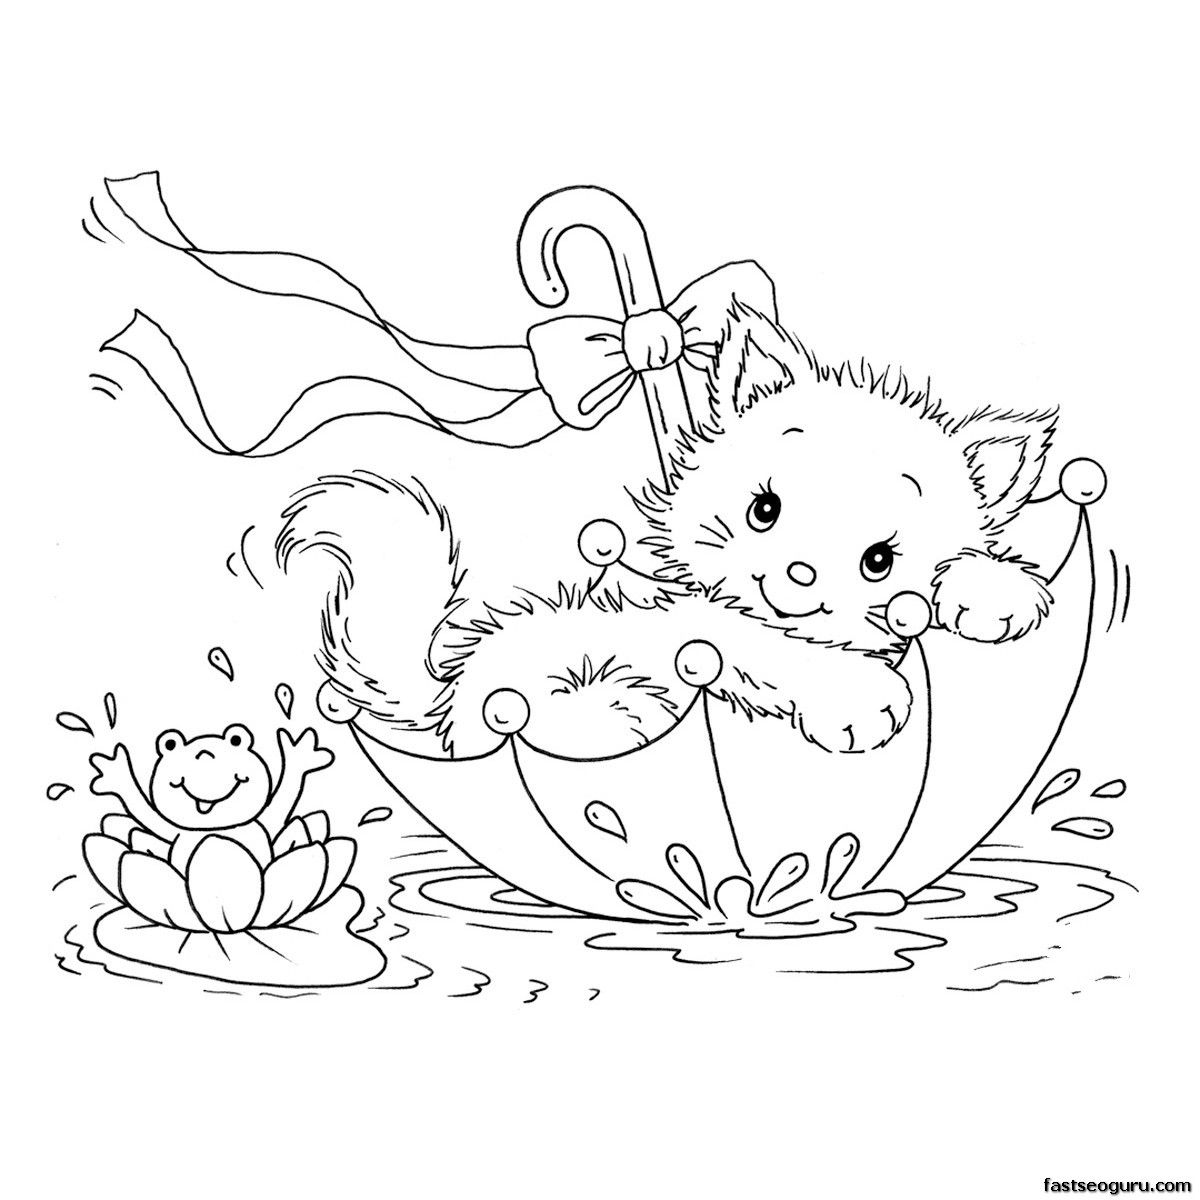 Free printable coloring pages kitty cat and frog in umbrella for kids free kitten cat coloring pages printable